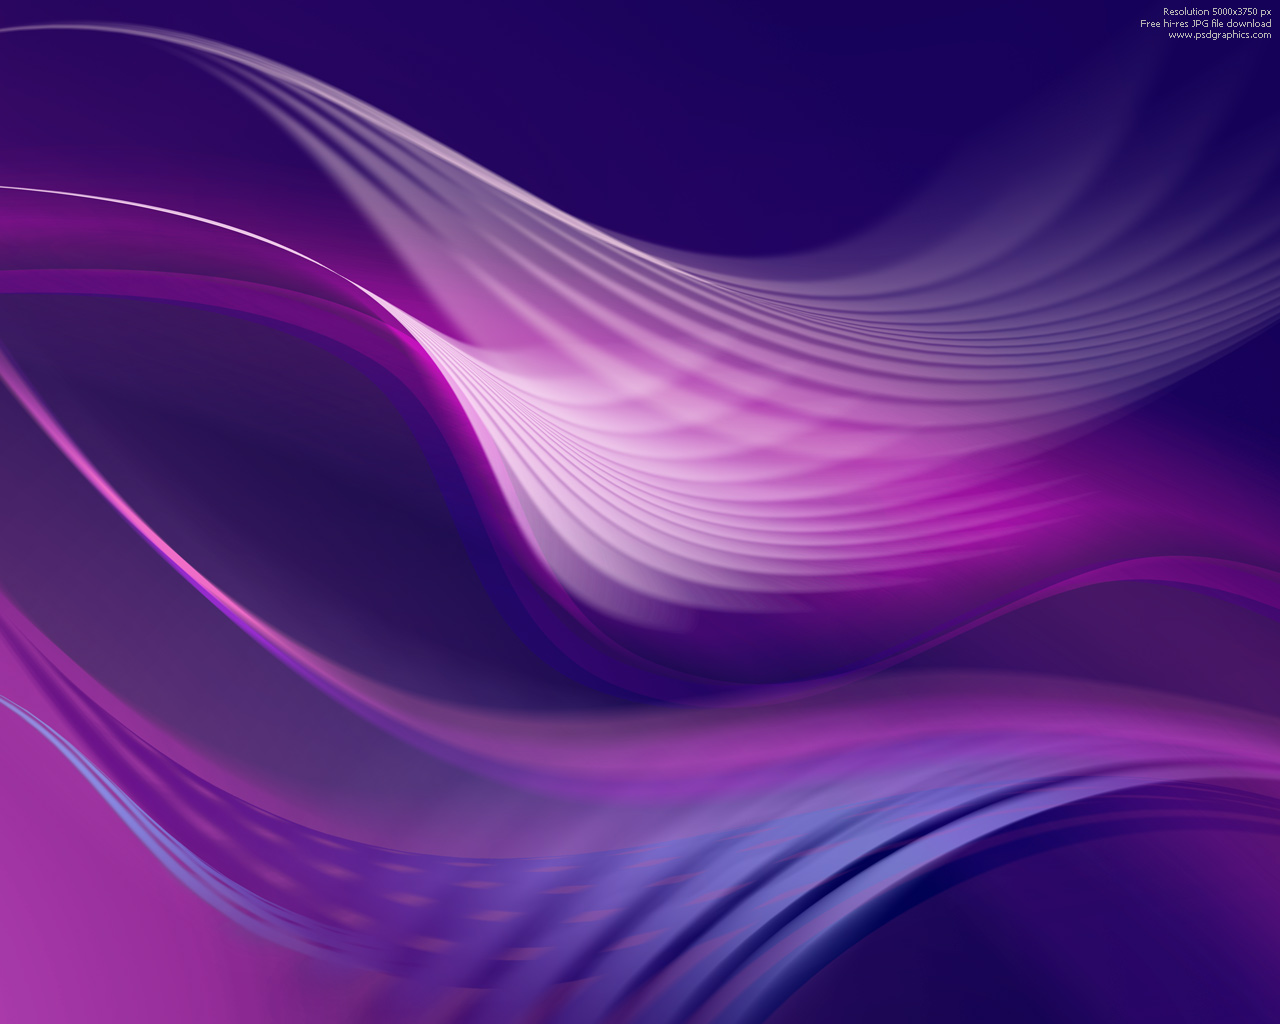 Abstract purple background 1280×1024